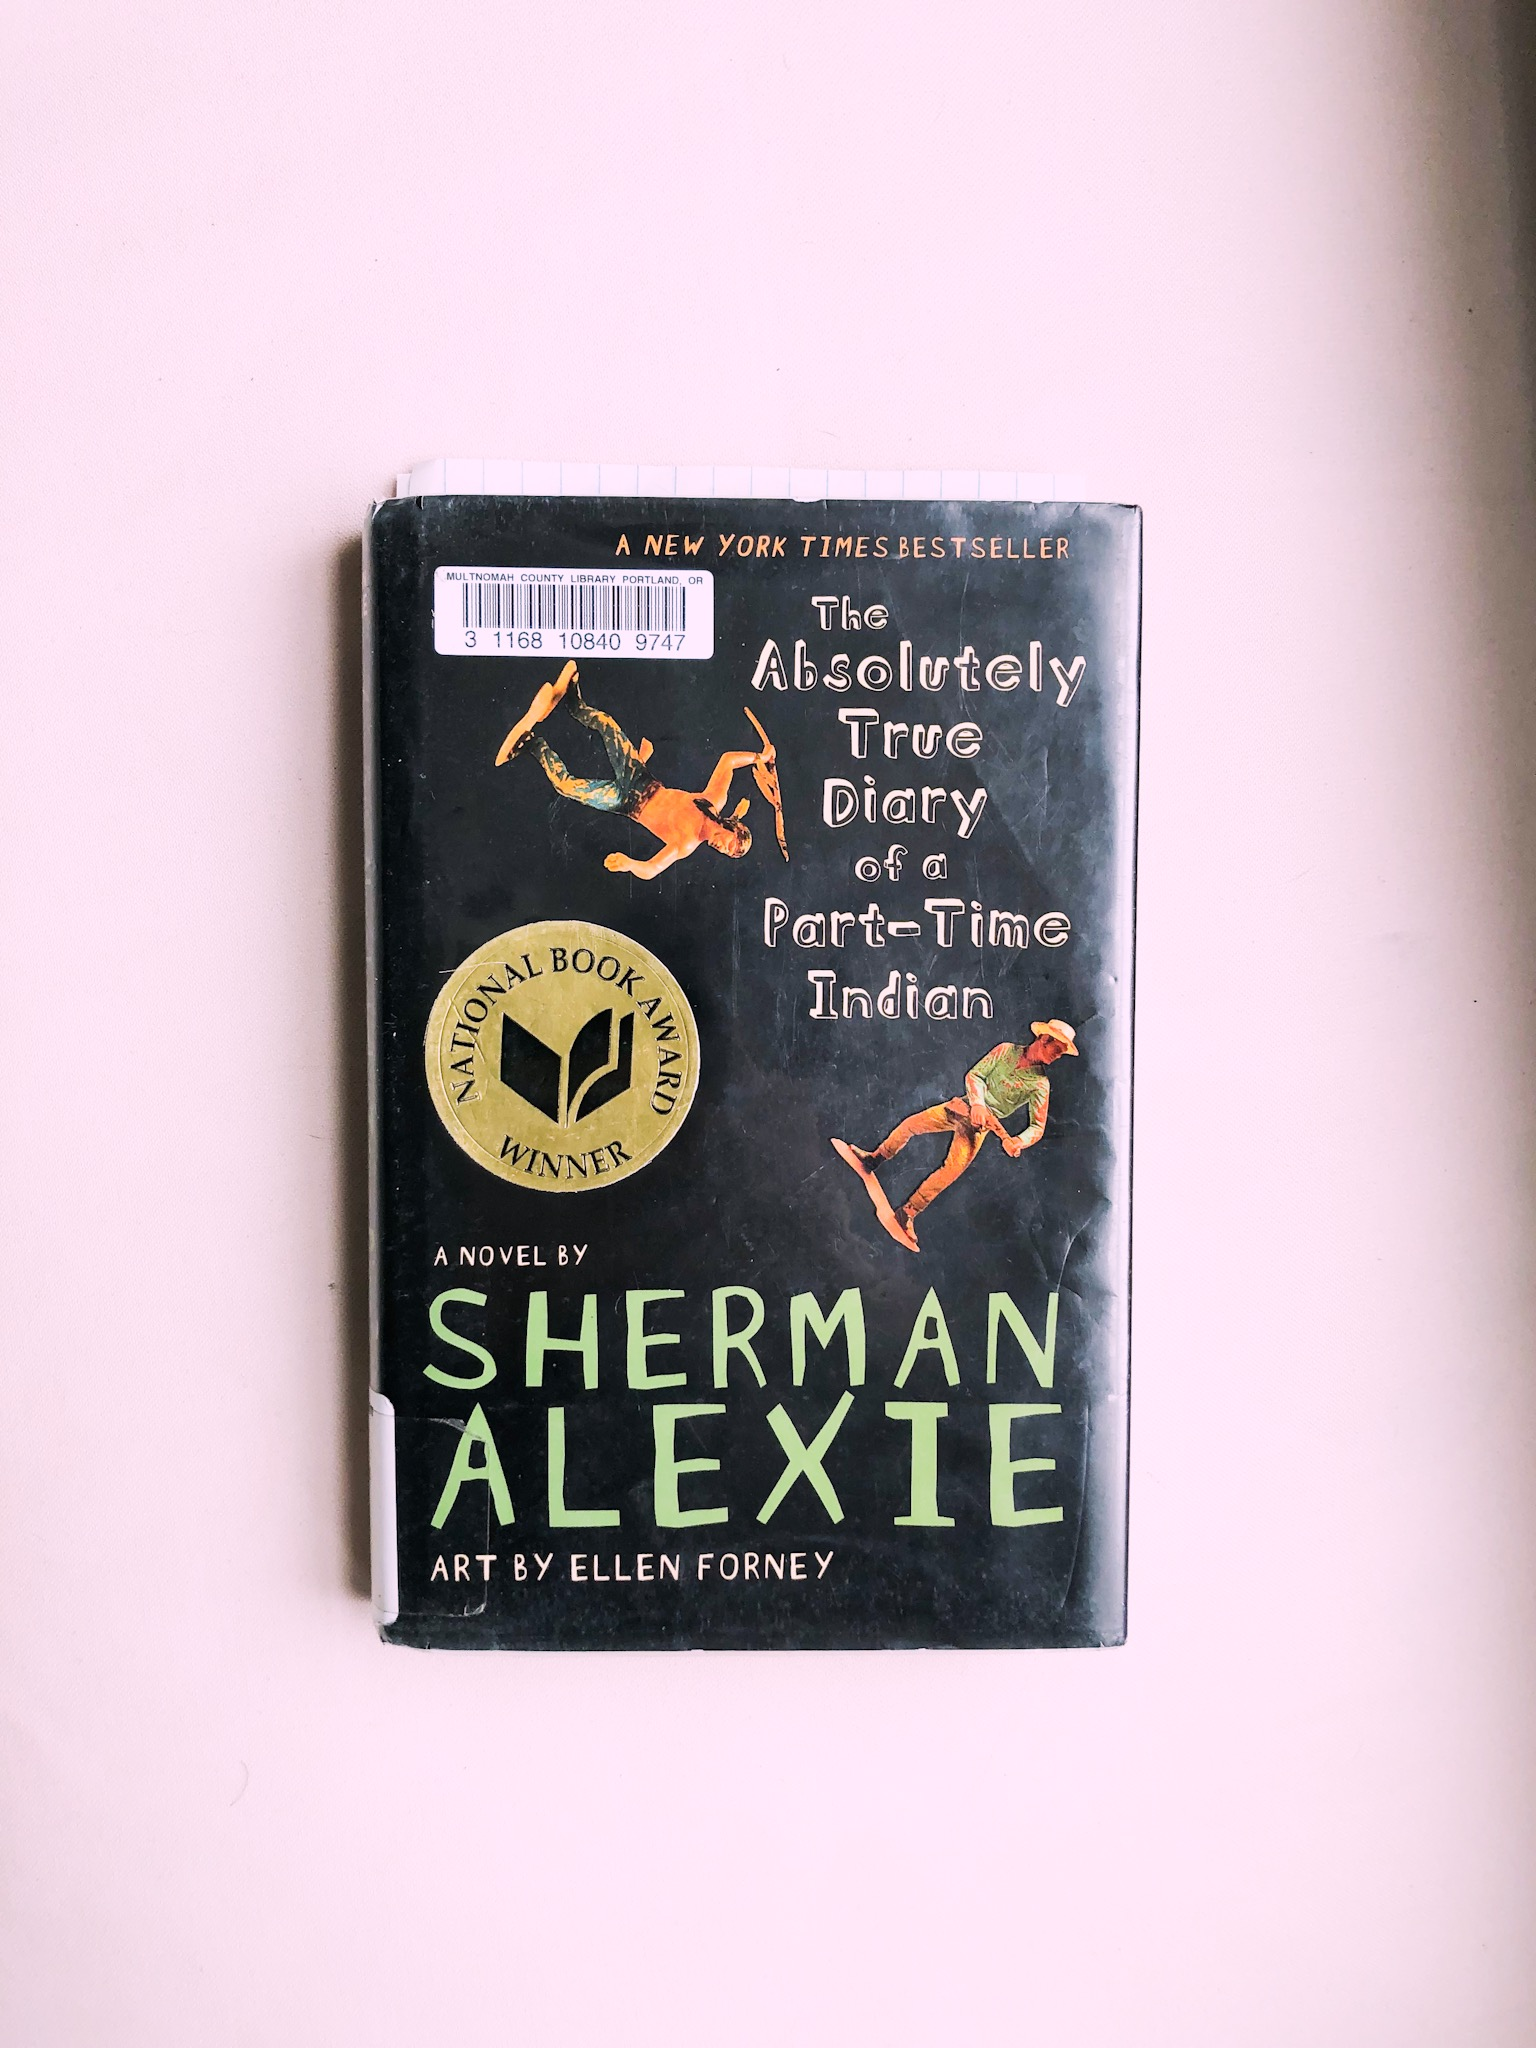 the absolutely true diary of a part-time indian - I absolutely adored this book by Sherman Alexie. Super easy read (it's probably a middle school book), but has really good themes of what it means to be a Native American and the dichotomy of having to live two different lives. I have been wanting to educate myself more on this, especially as I become more aware of the Native American issues (and well, the mere fact that basically all white people are living on stolen land), but I guess that's a different post. This book was very poignant but in a way that anyone can understand. I thoroughly enjoyed it and I'm excited to read more of Alexie's work.1/1